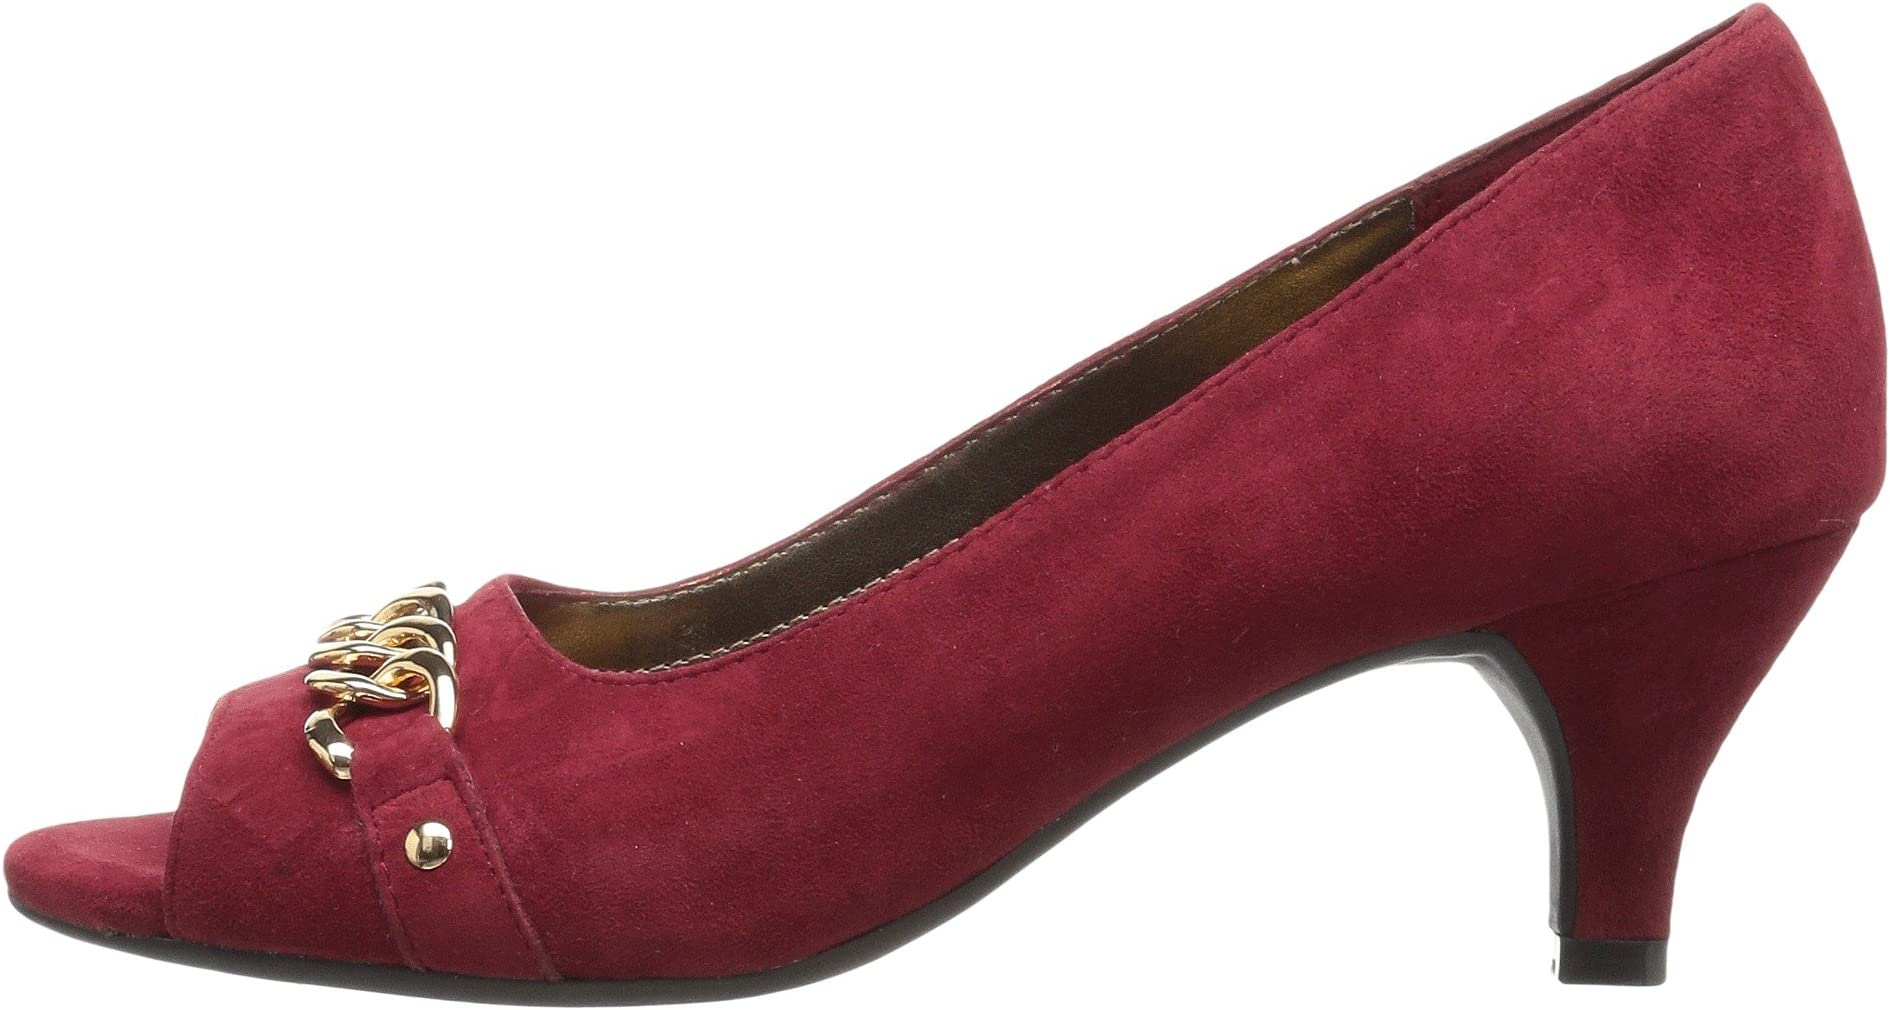 Aerosoles Made Of Honor | Women's shoes | 2020 Newest